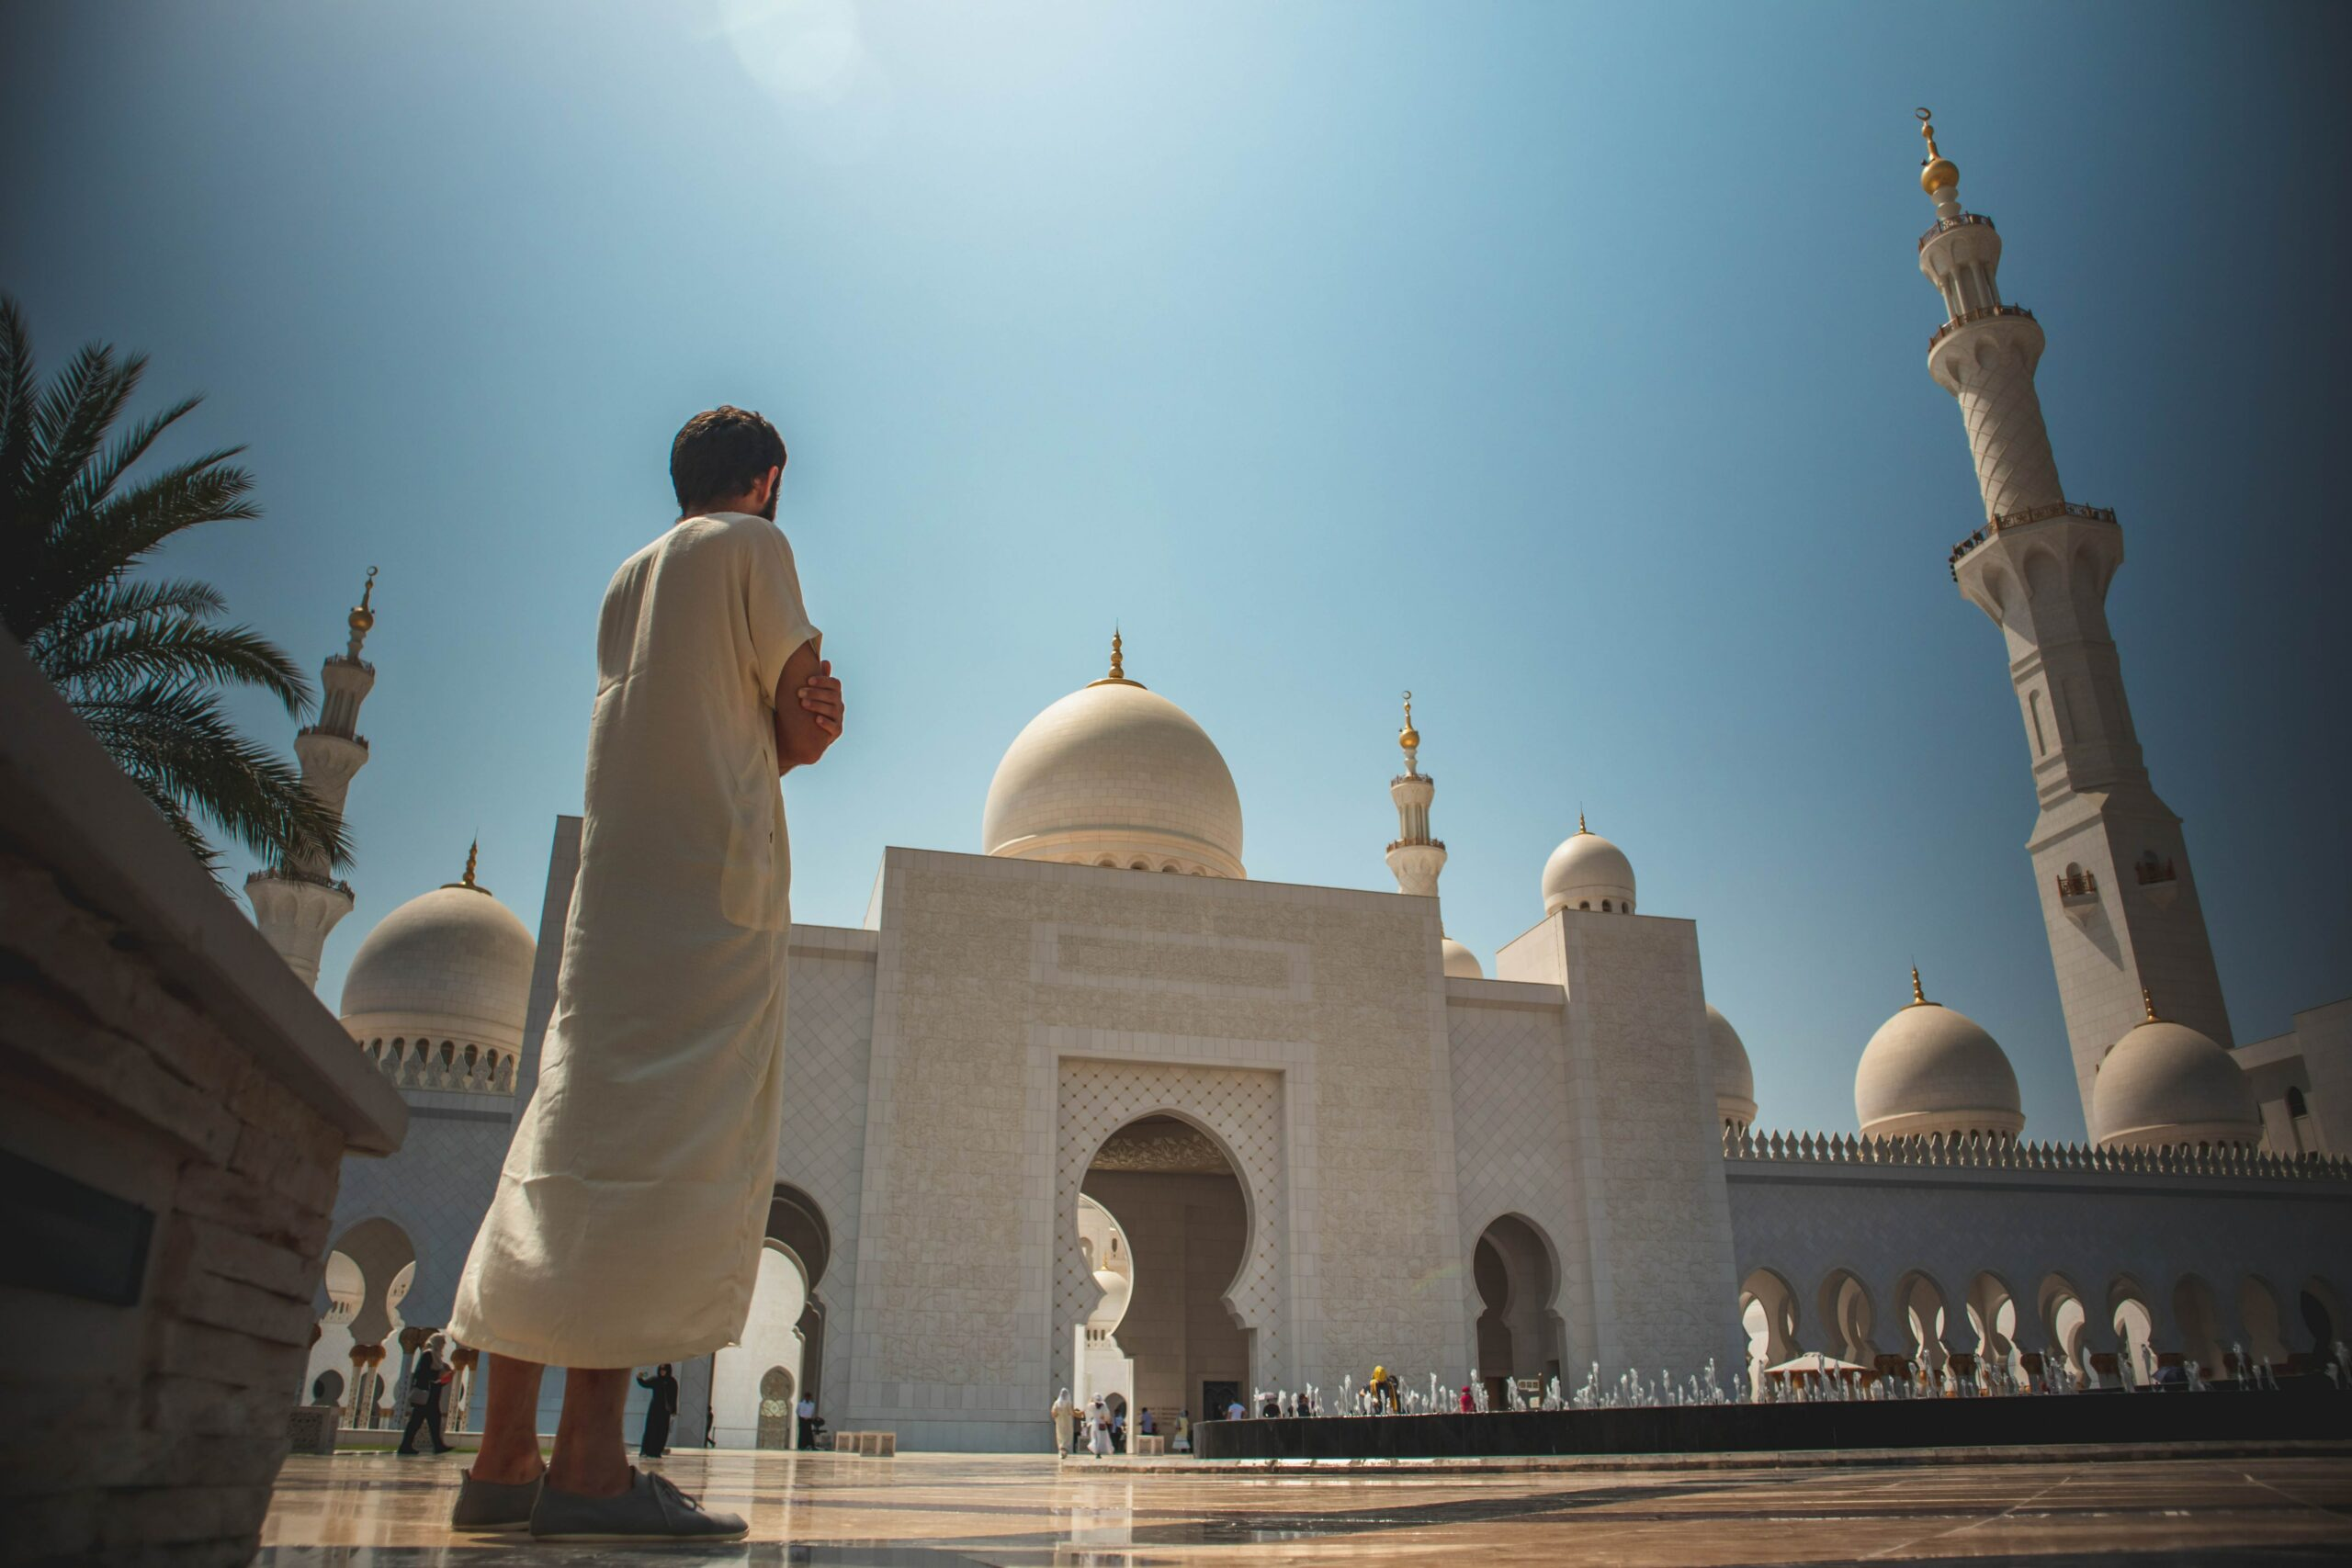 man standing near white mosque